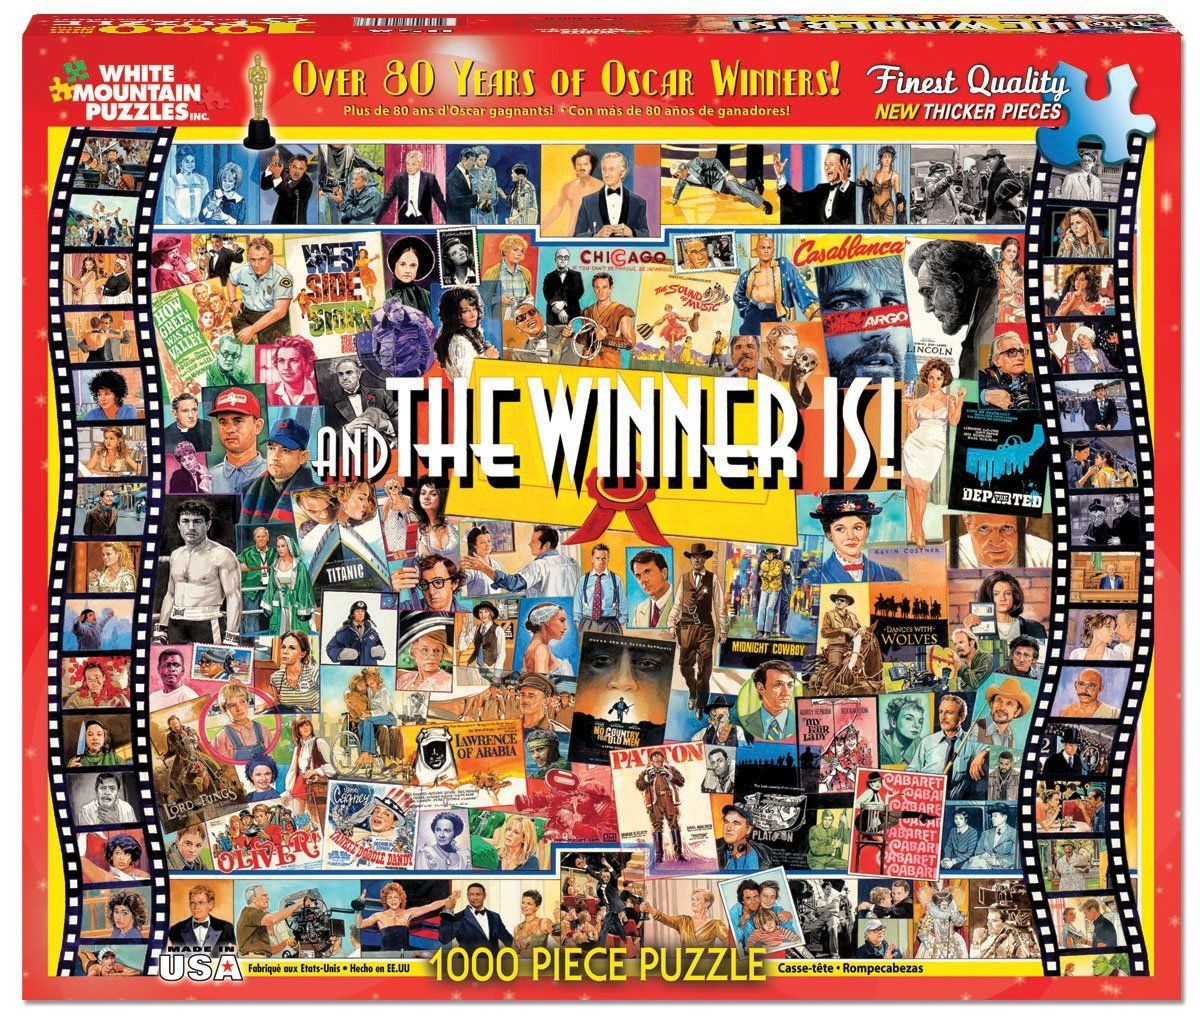 1000 Pieces And The Winner Is Over 80 Years Of Oscar Winners Puzzle By White Mountain Puzzles Inc No 9 Puzzles Jigsaw Puzzles Free Jigsaw Puzzles